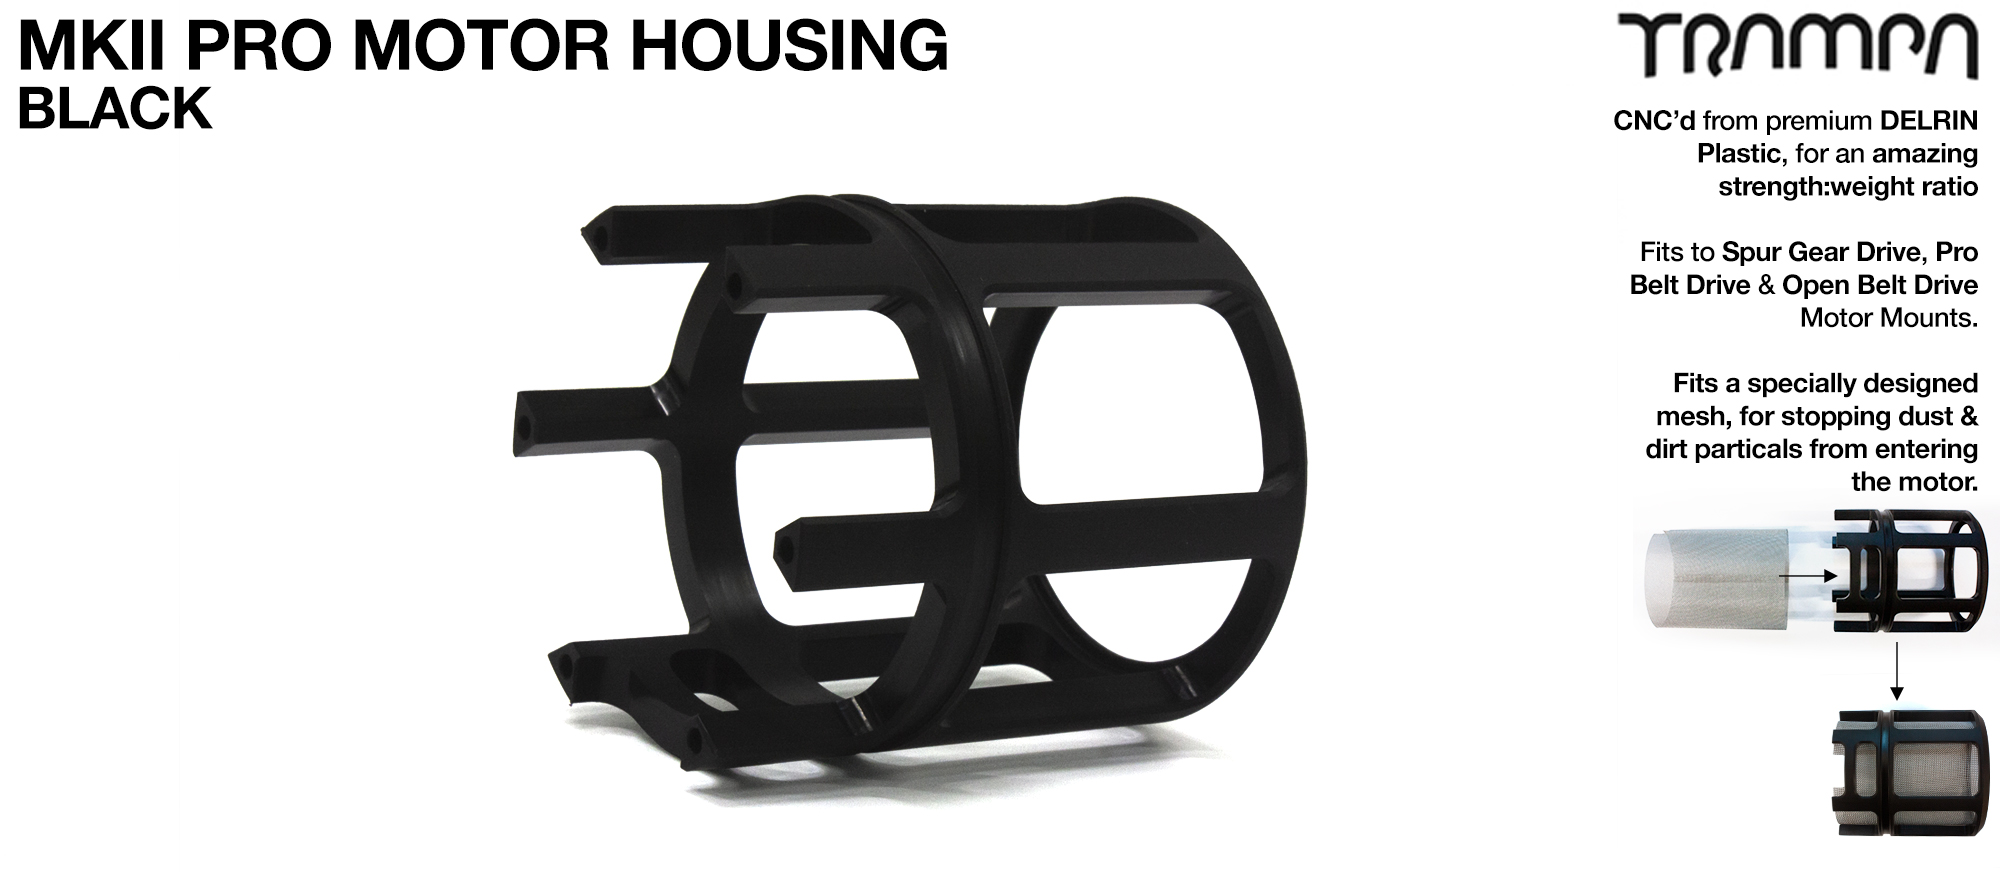 MKII Motor protection HOUSING Open Ended made from tough DELRIN Plastic & fits with Motor Fan - BLACK